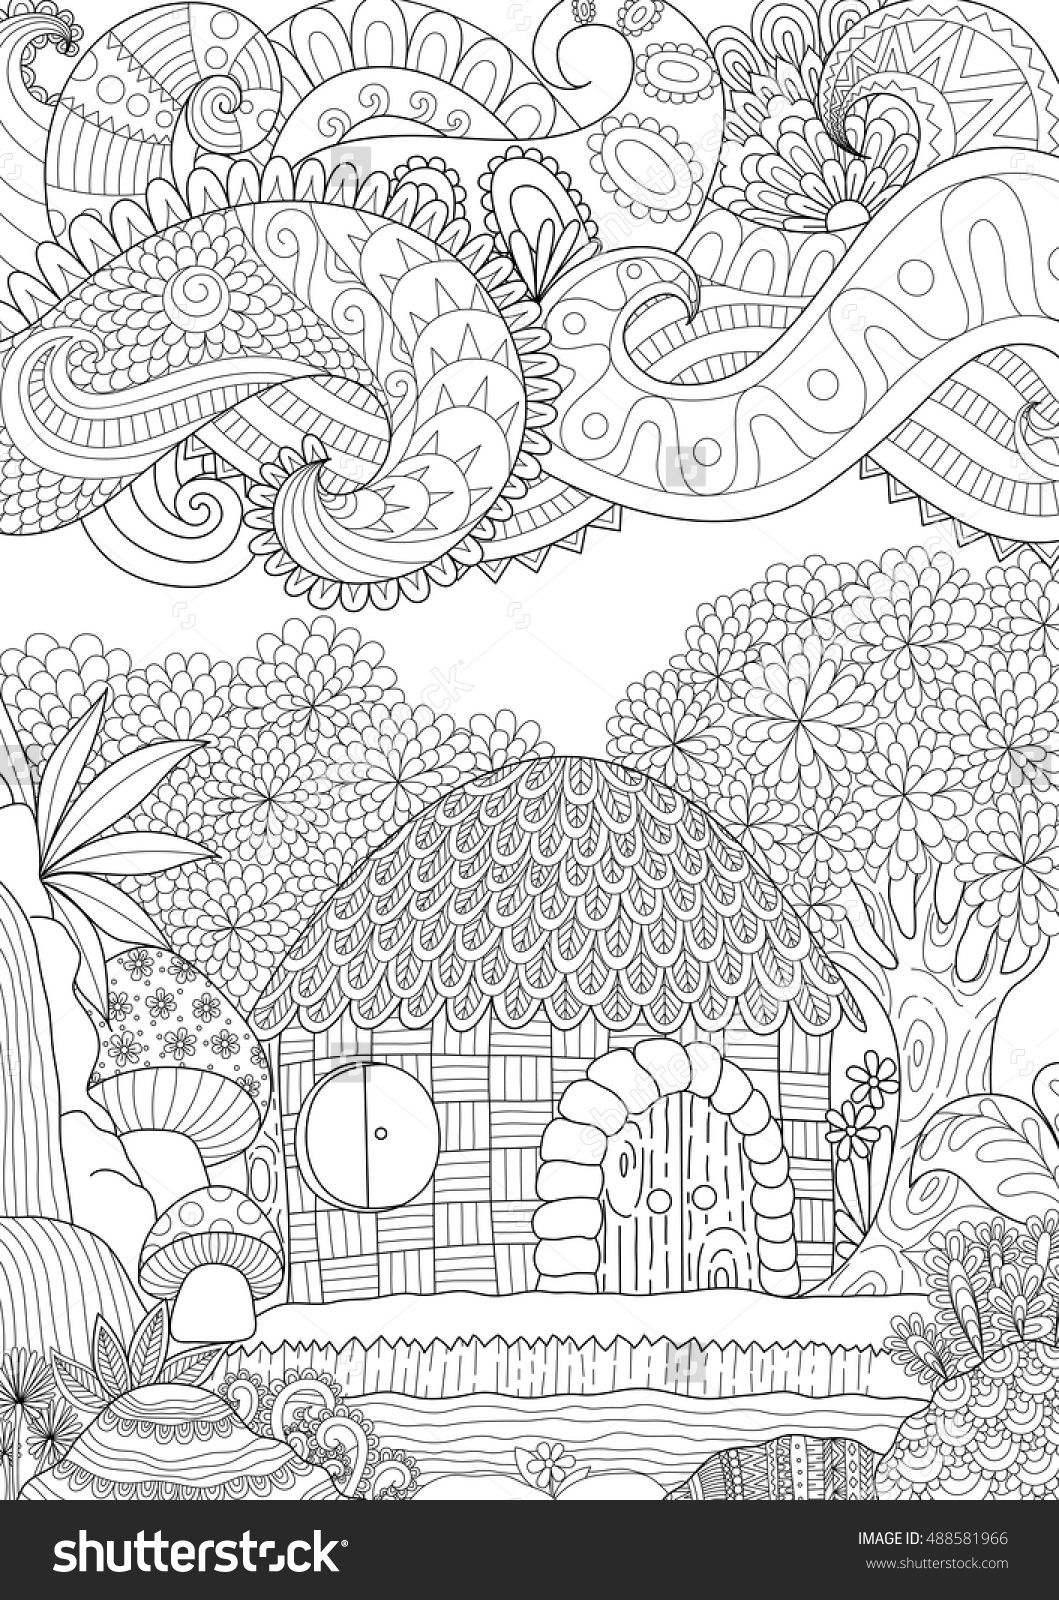 Zendoodle design of small hut in the forest with abstract clouds for ...